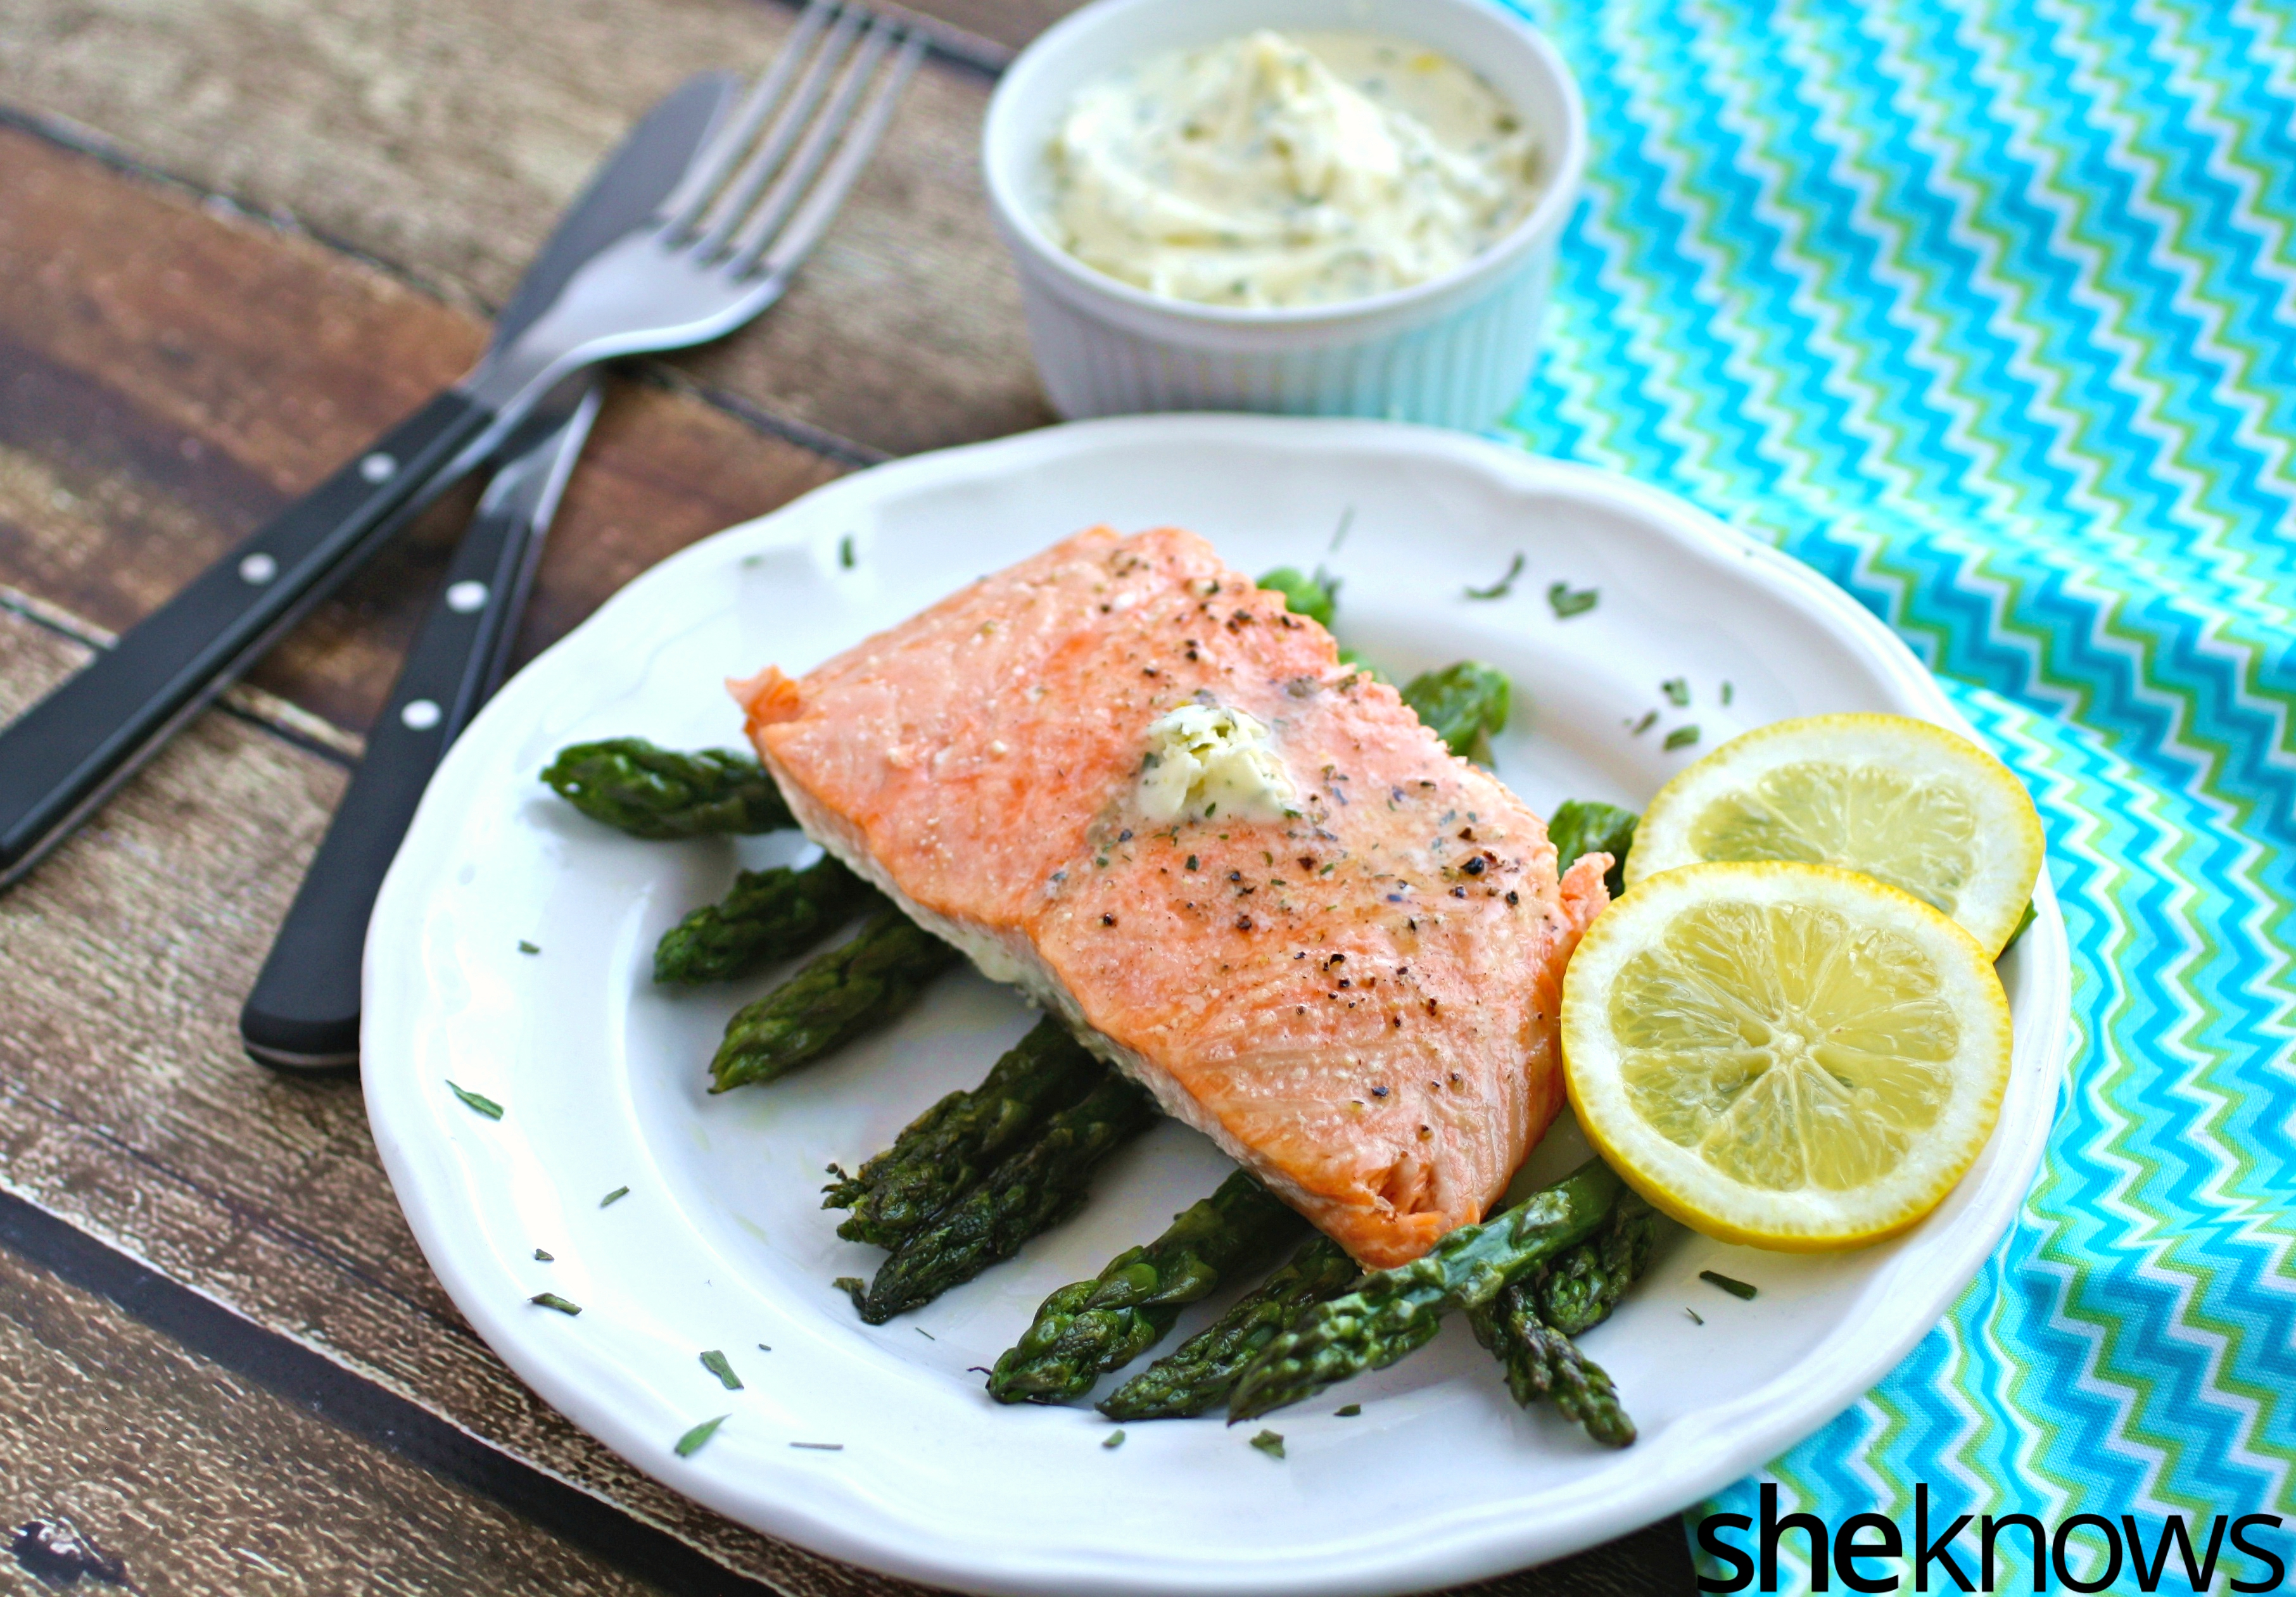 Make this easy, elegant dish -- easy oven-baked salmon with asparagus and lemon-tarragon butter - for a special gathering or a meal for your family.